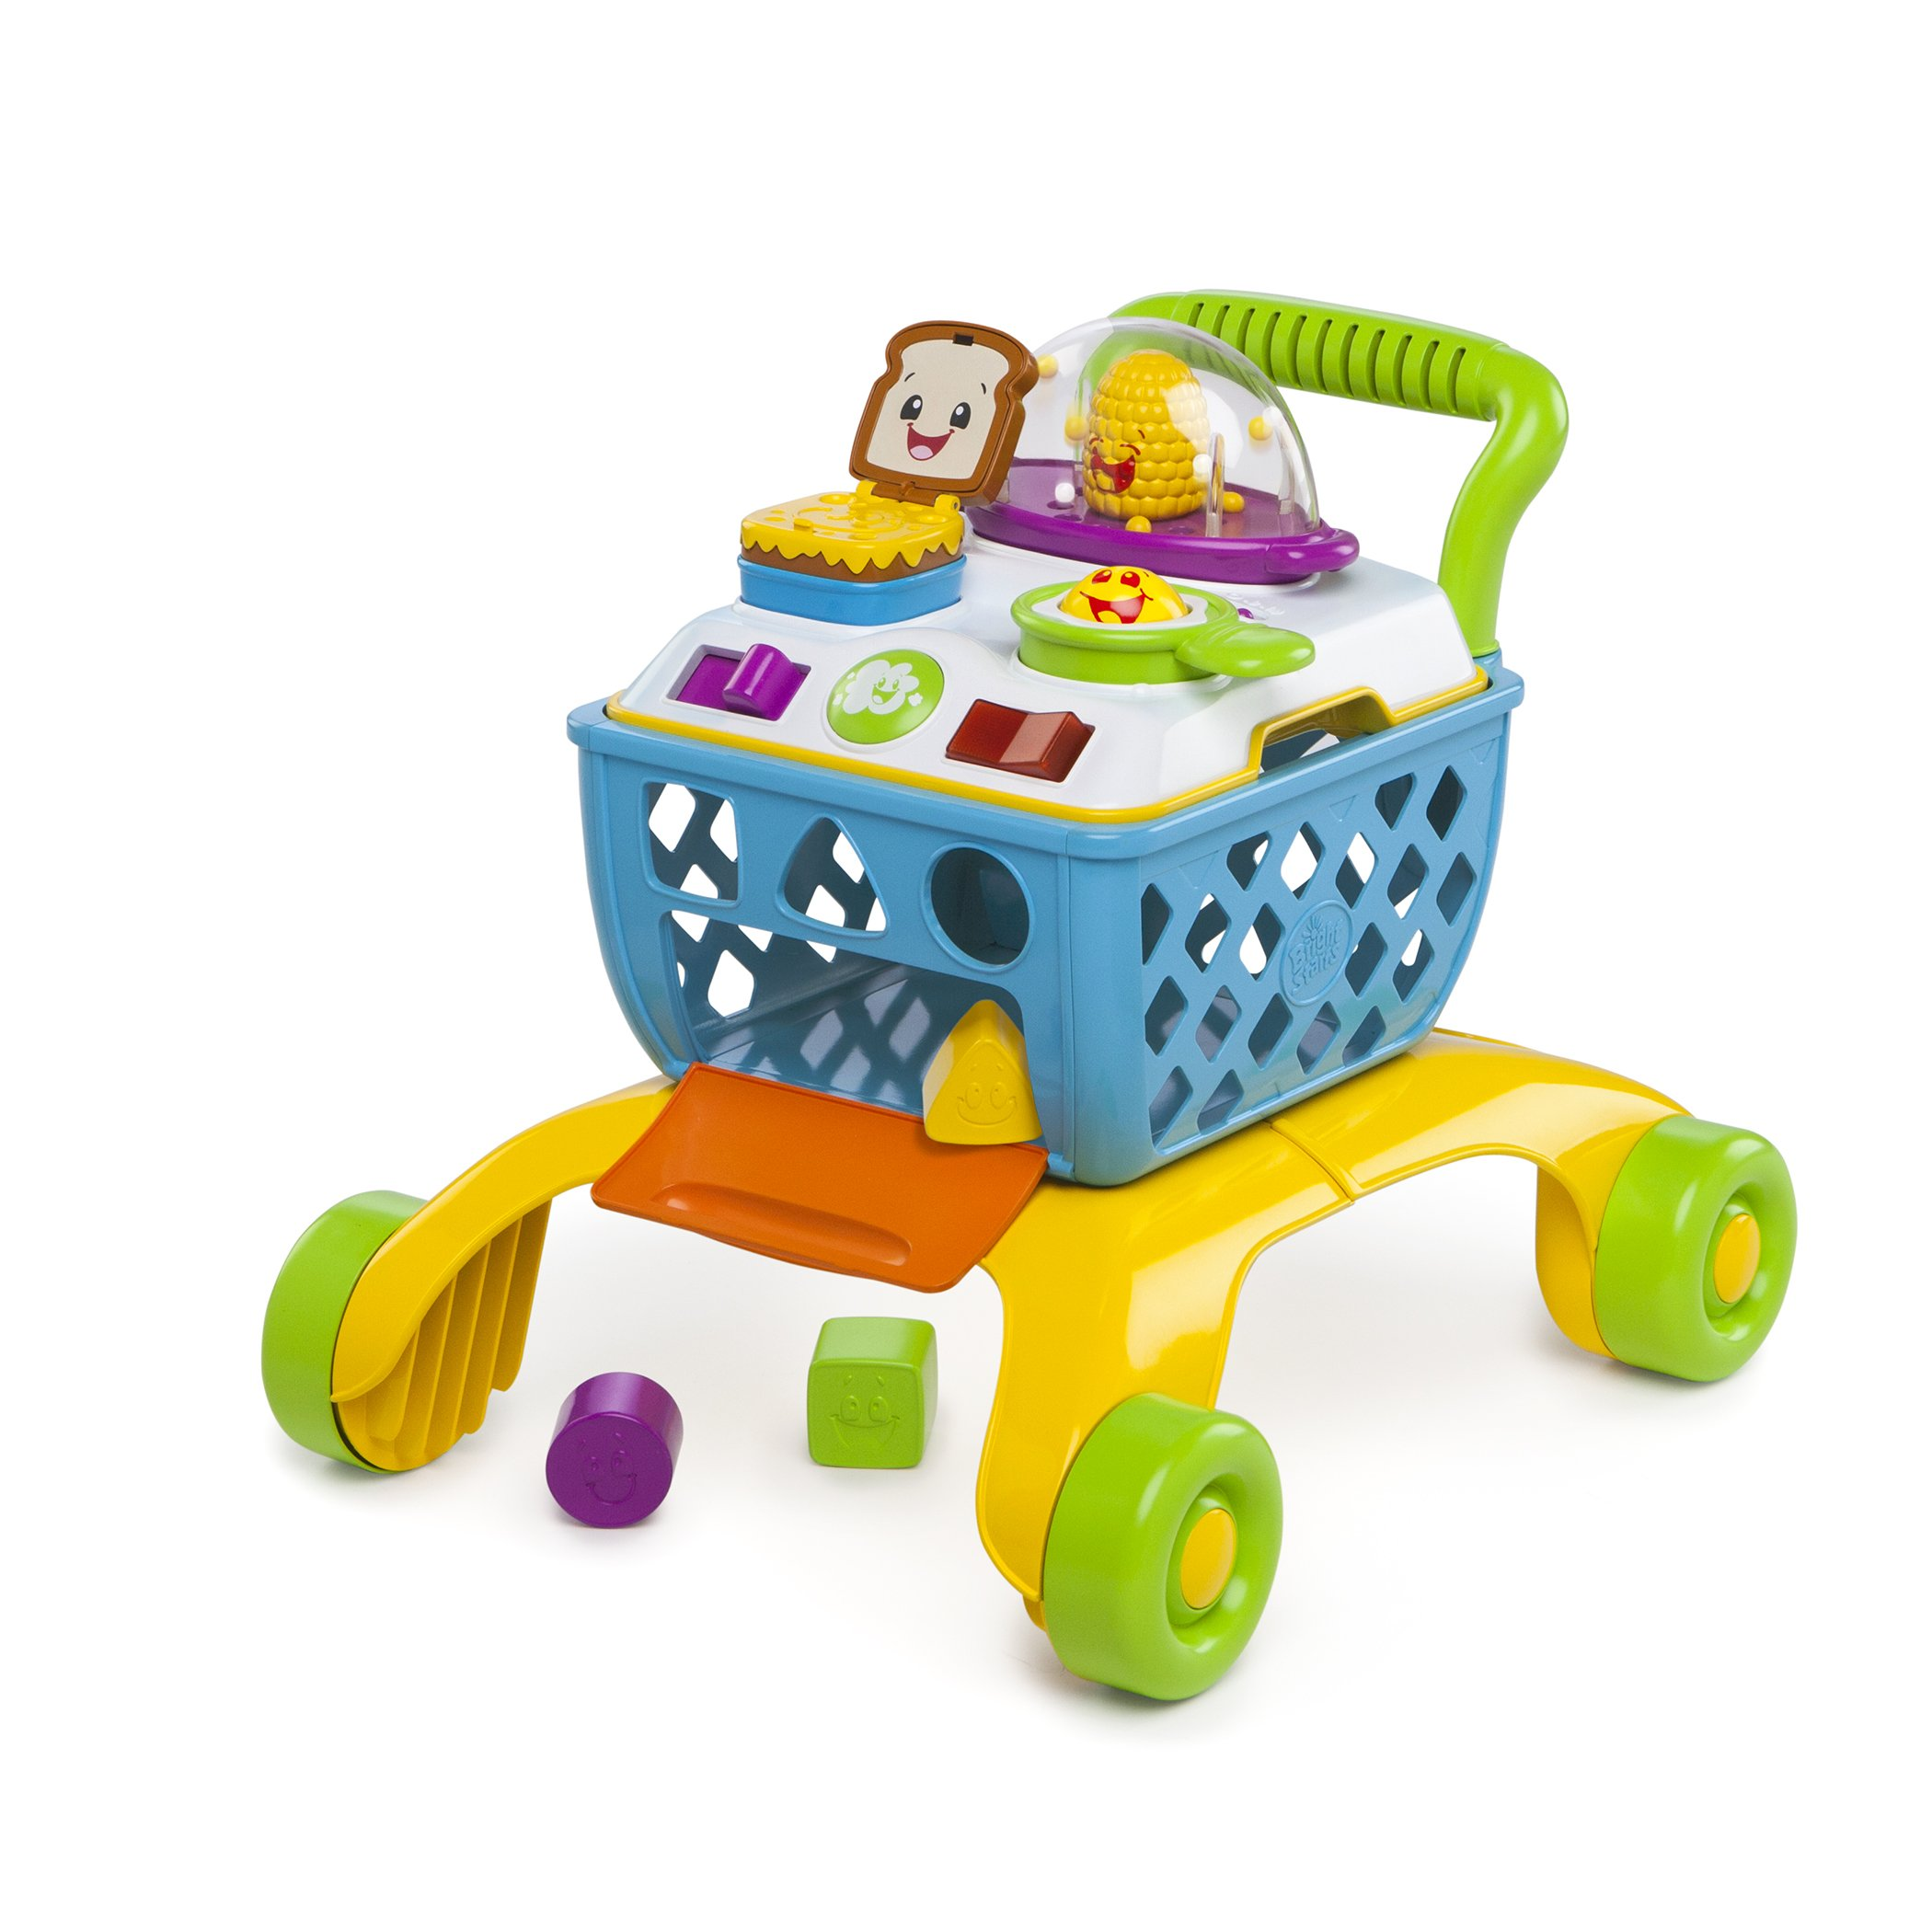 Bright Starts Giggling Gourmet Shop 'n Cook Walker by Bright Starts (Image #1)